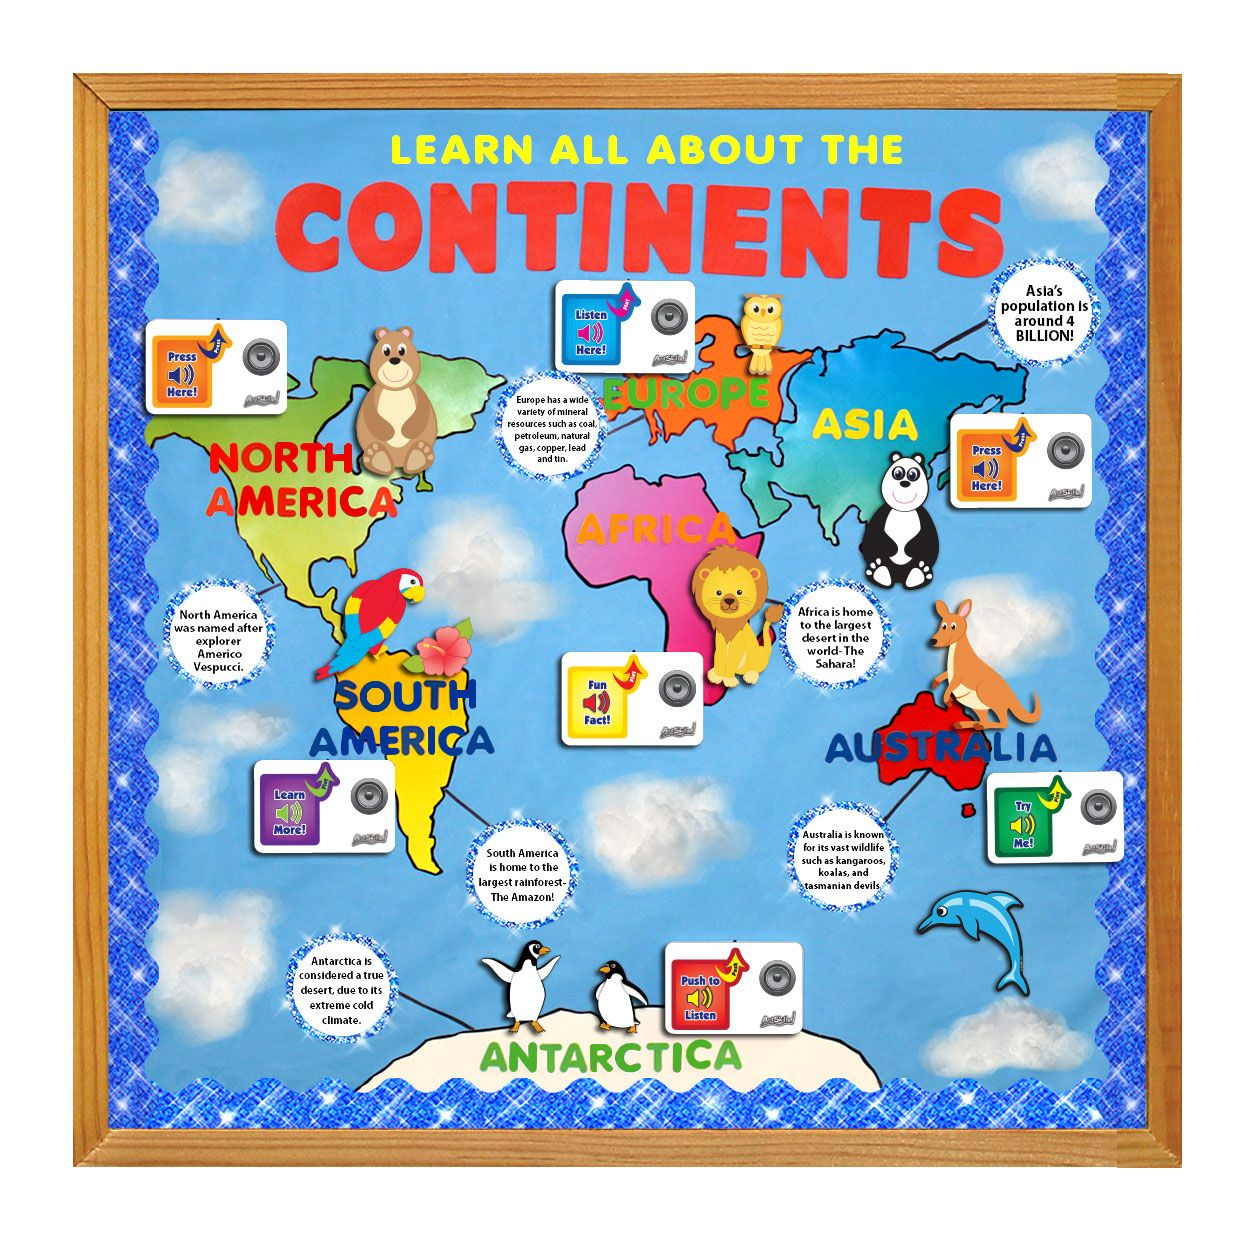 Bulletin Board Inspiration Teach Your Students About The Continents Using The Poster Sound Re Teaching Social Studies Classroom Decorations School Decorations